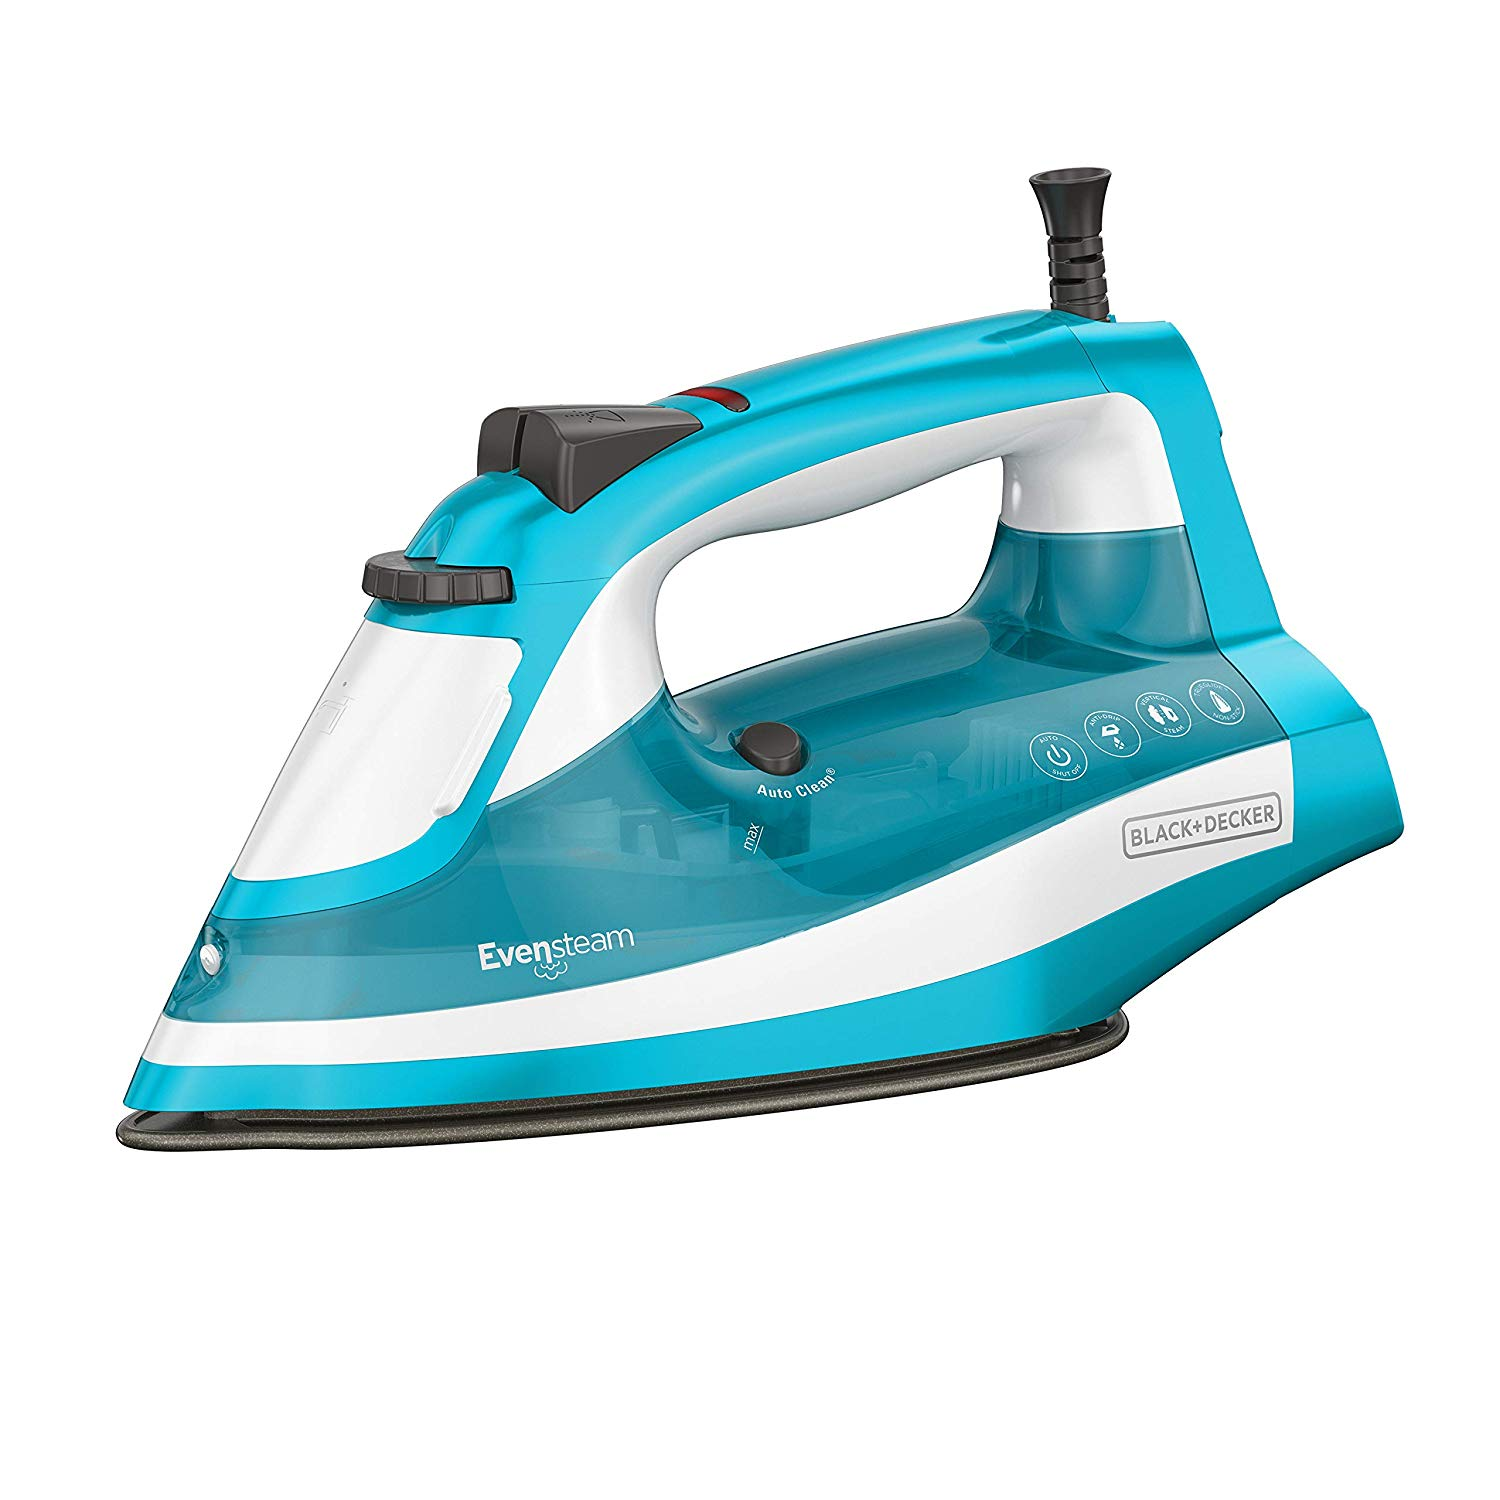 Black and Decker One Step Steam Iron Review